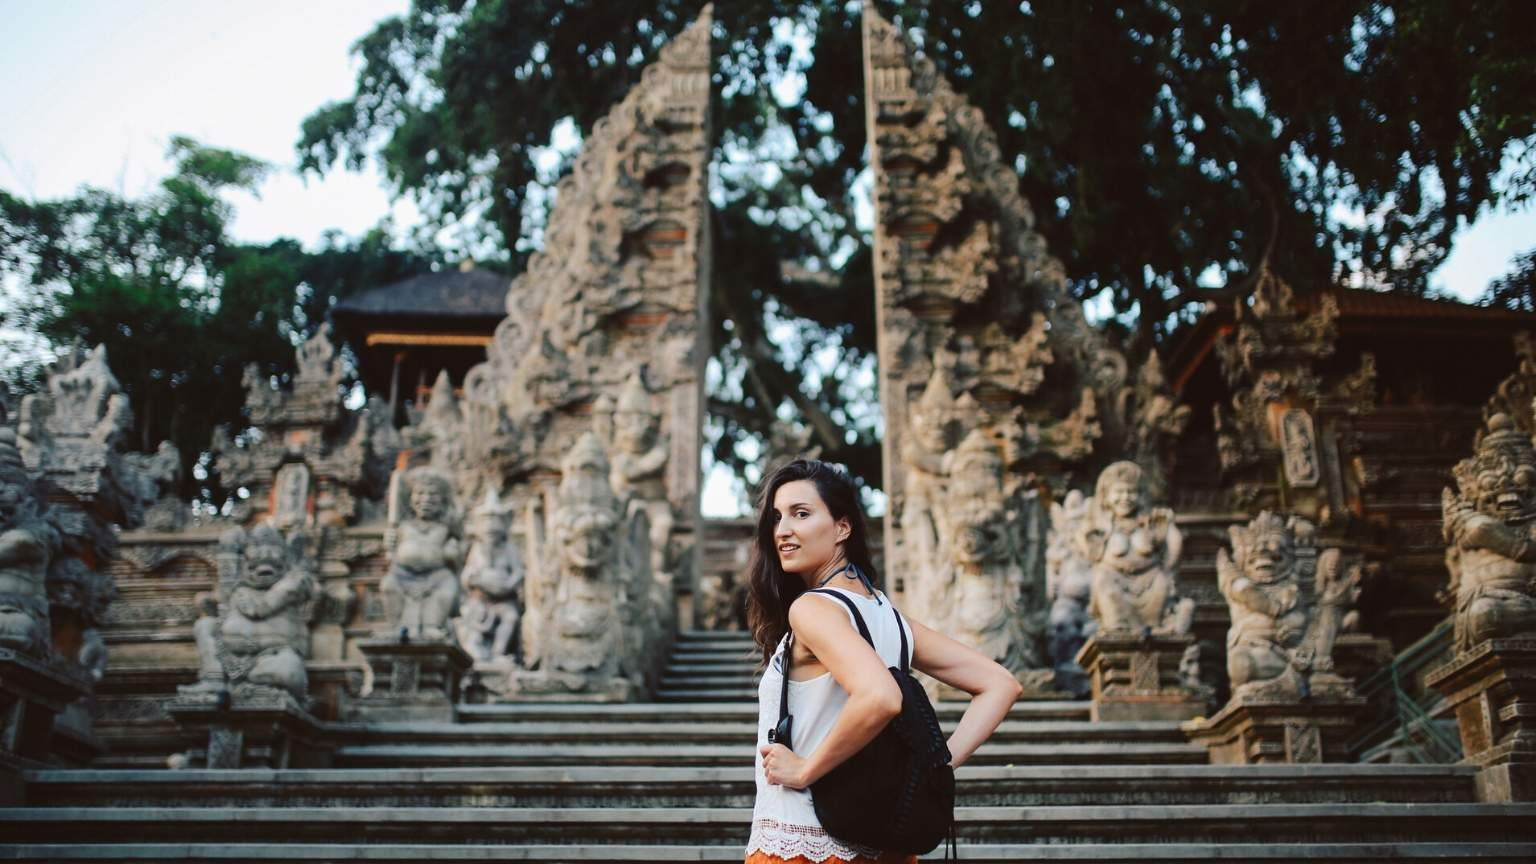 Woman tourist in bali